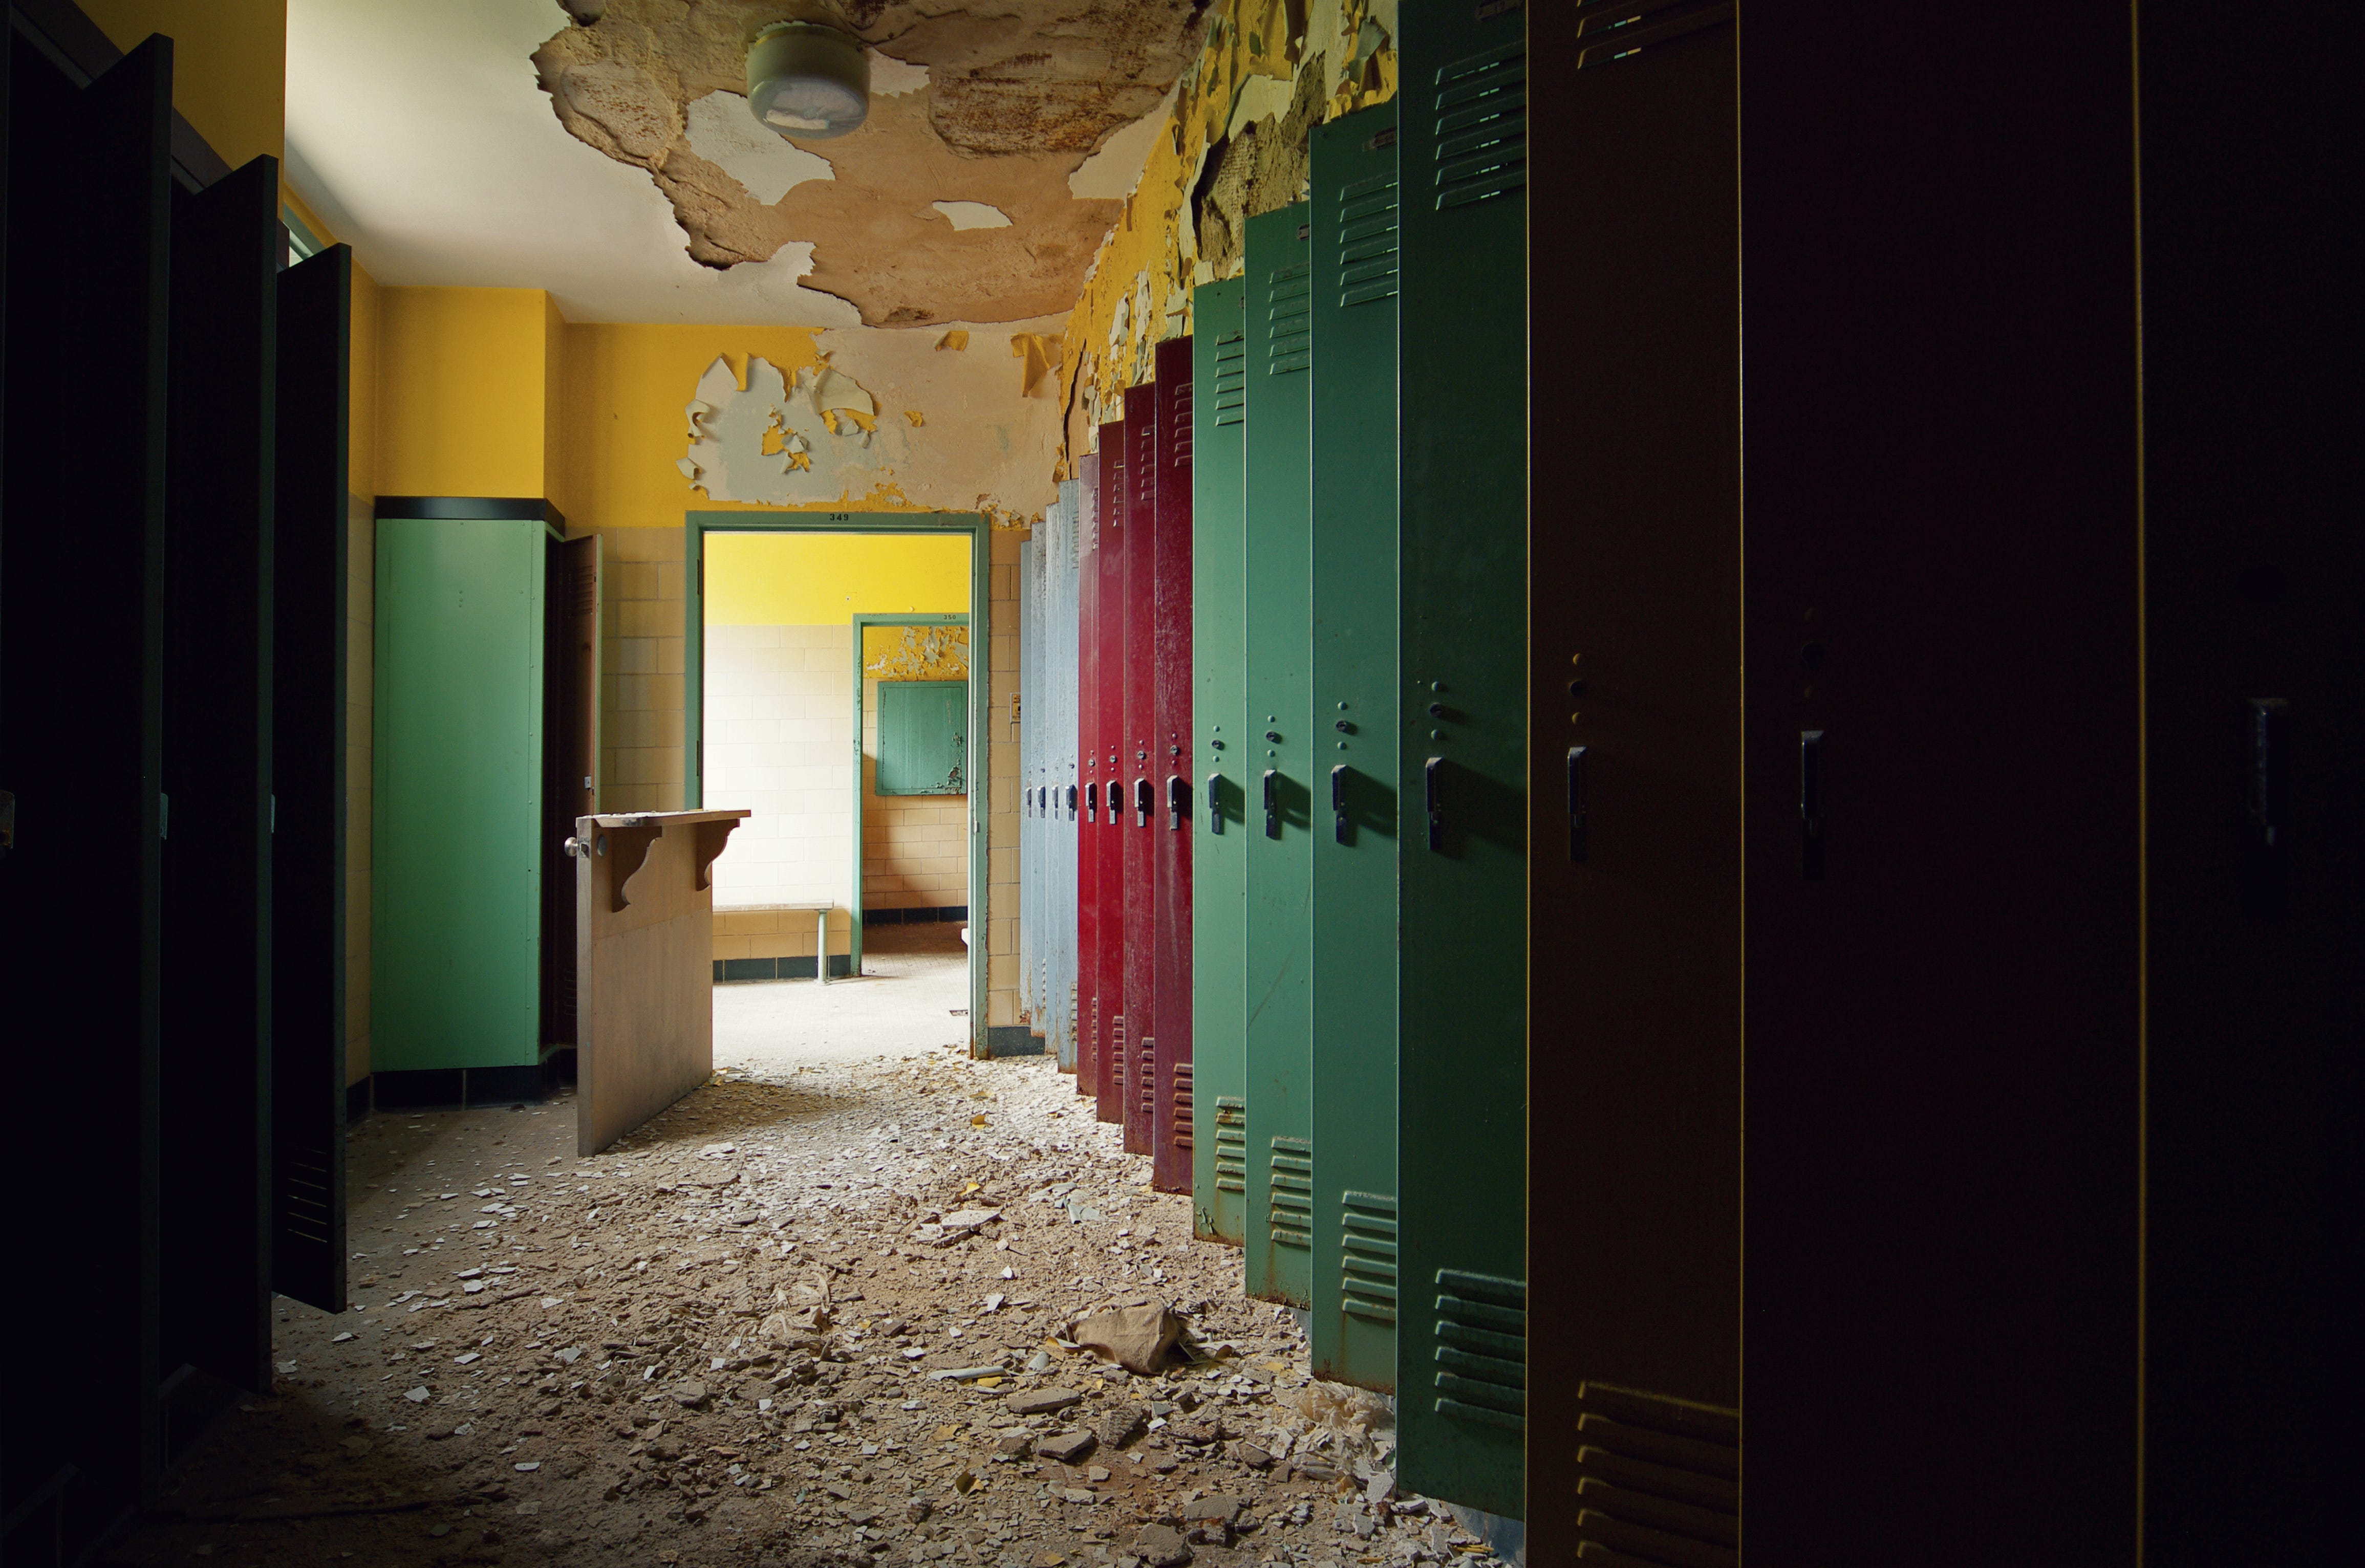 Abandoned Asylums Book Chronicles Those In Northeast